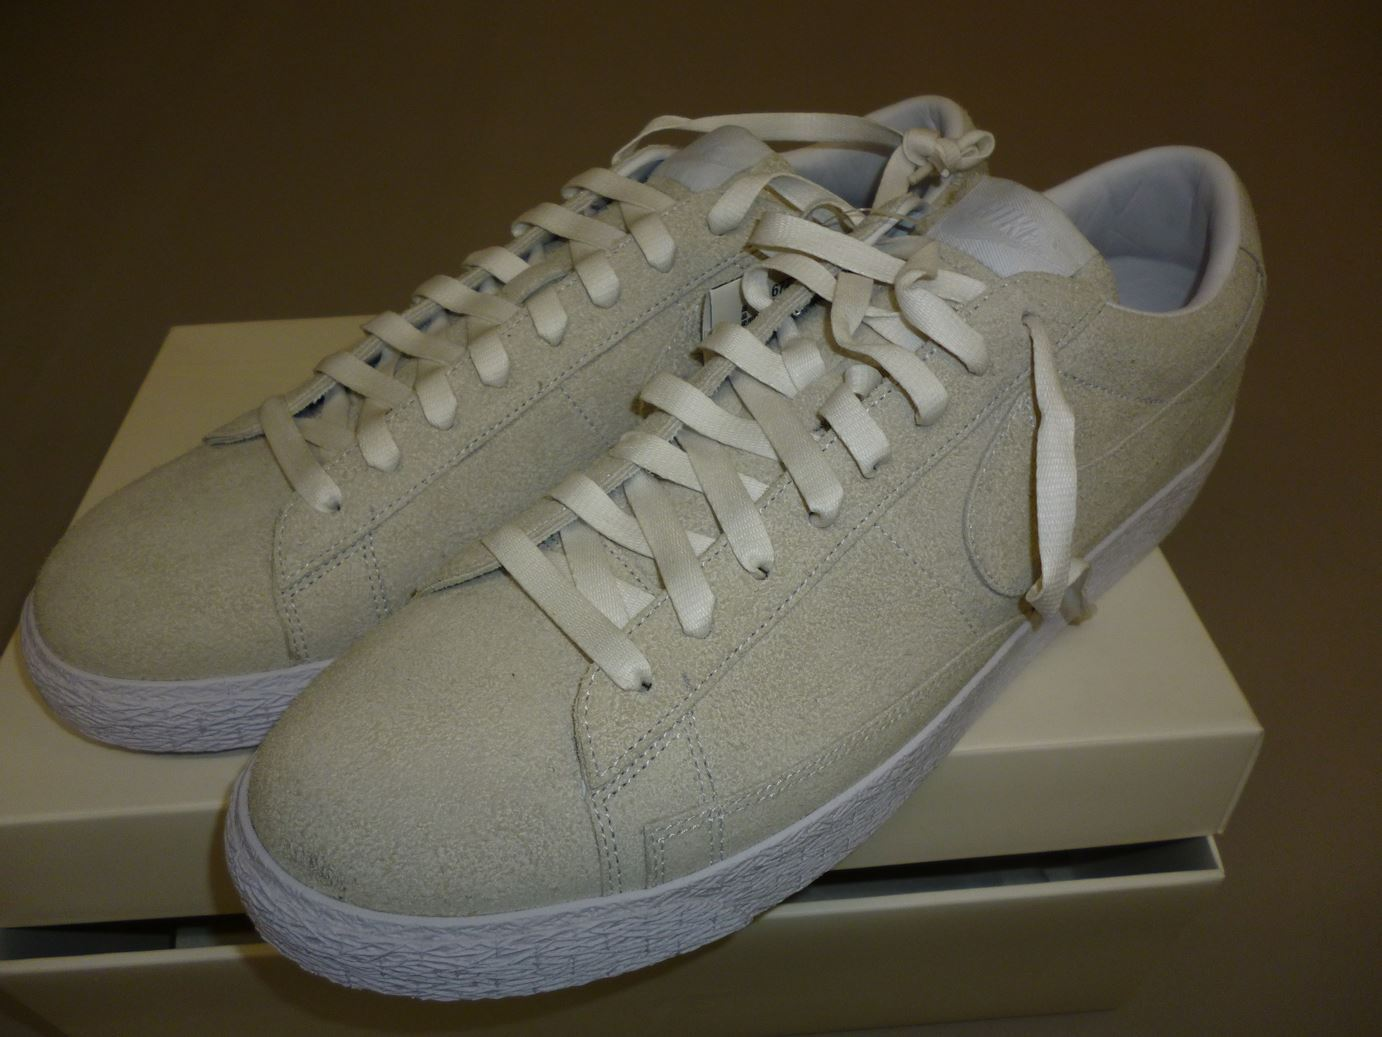 7255 Nike blazer low fragment sp the pool aoyama US9.5